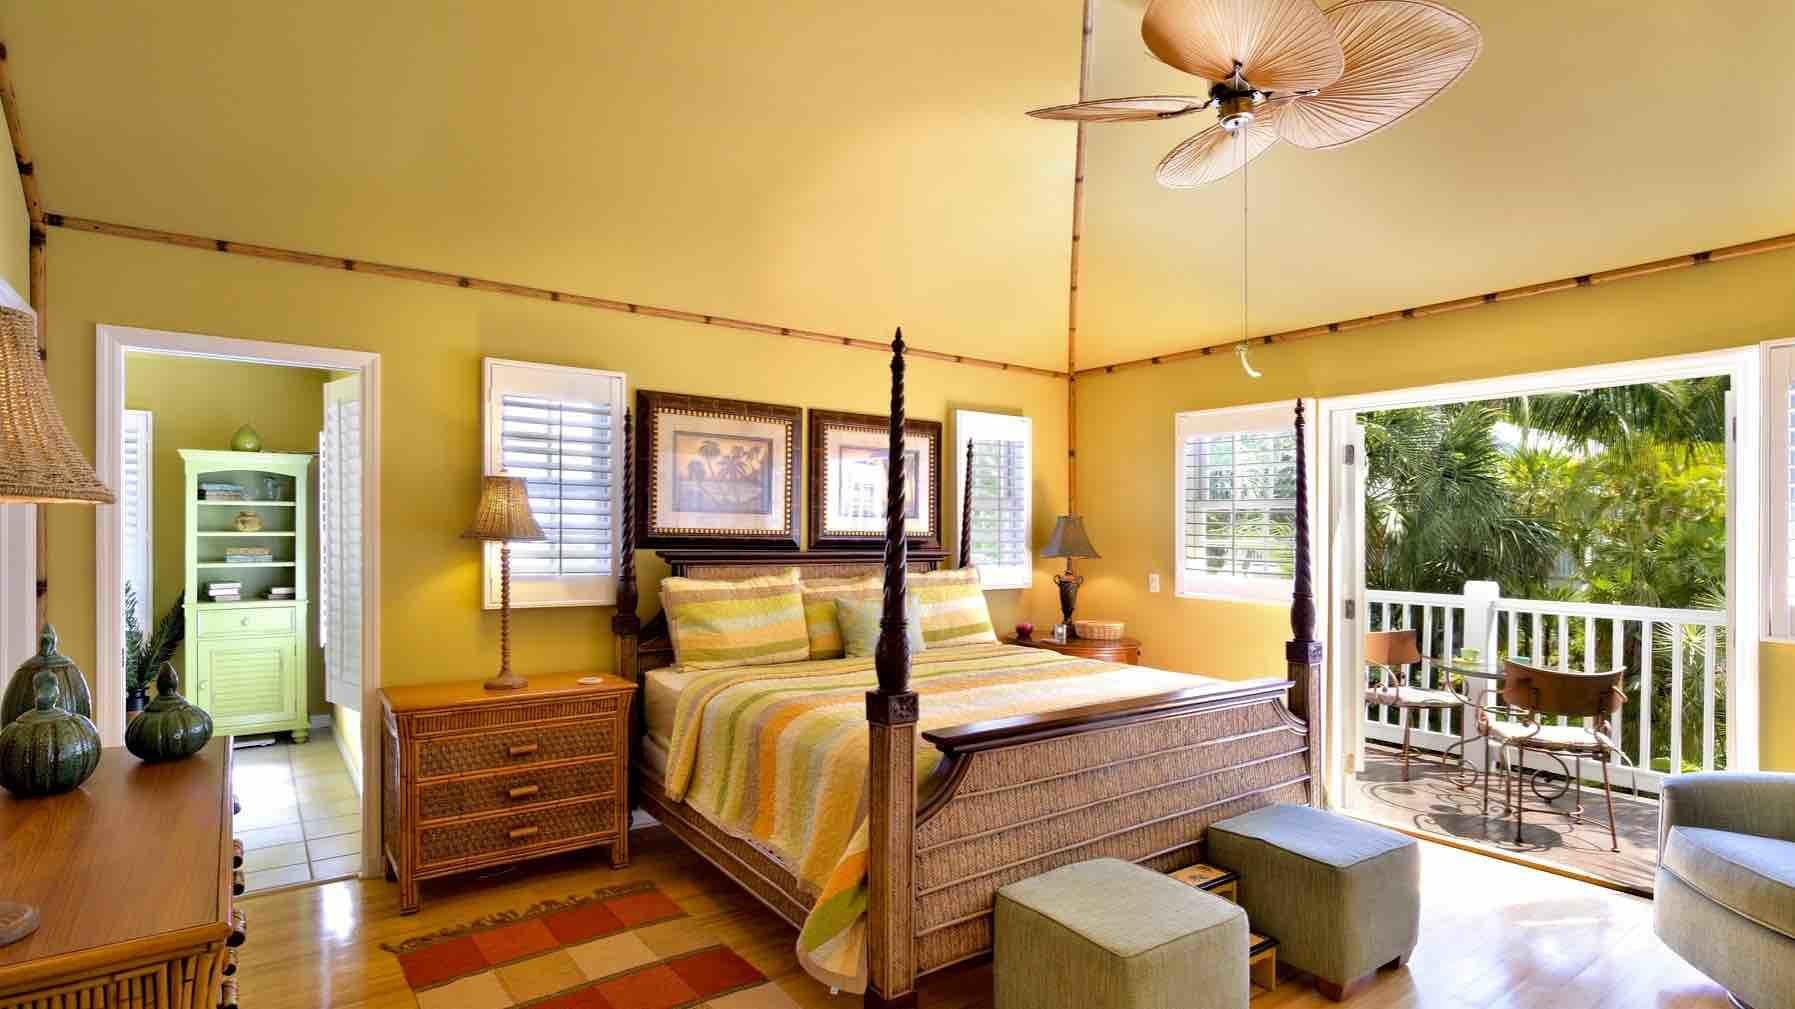 The master bedroom suite has its own balcony, vaulted ceiling and overhead fan...